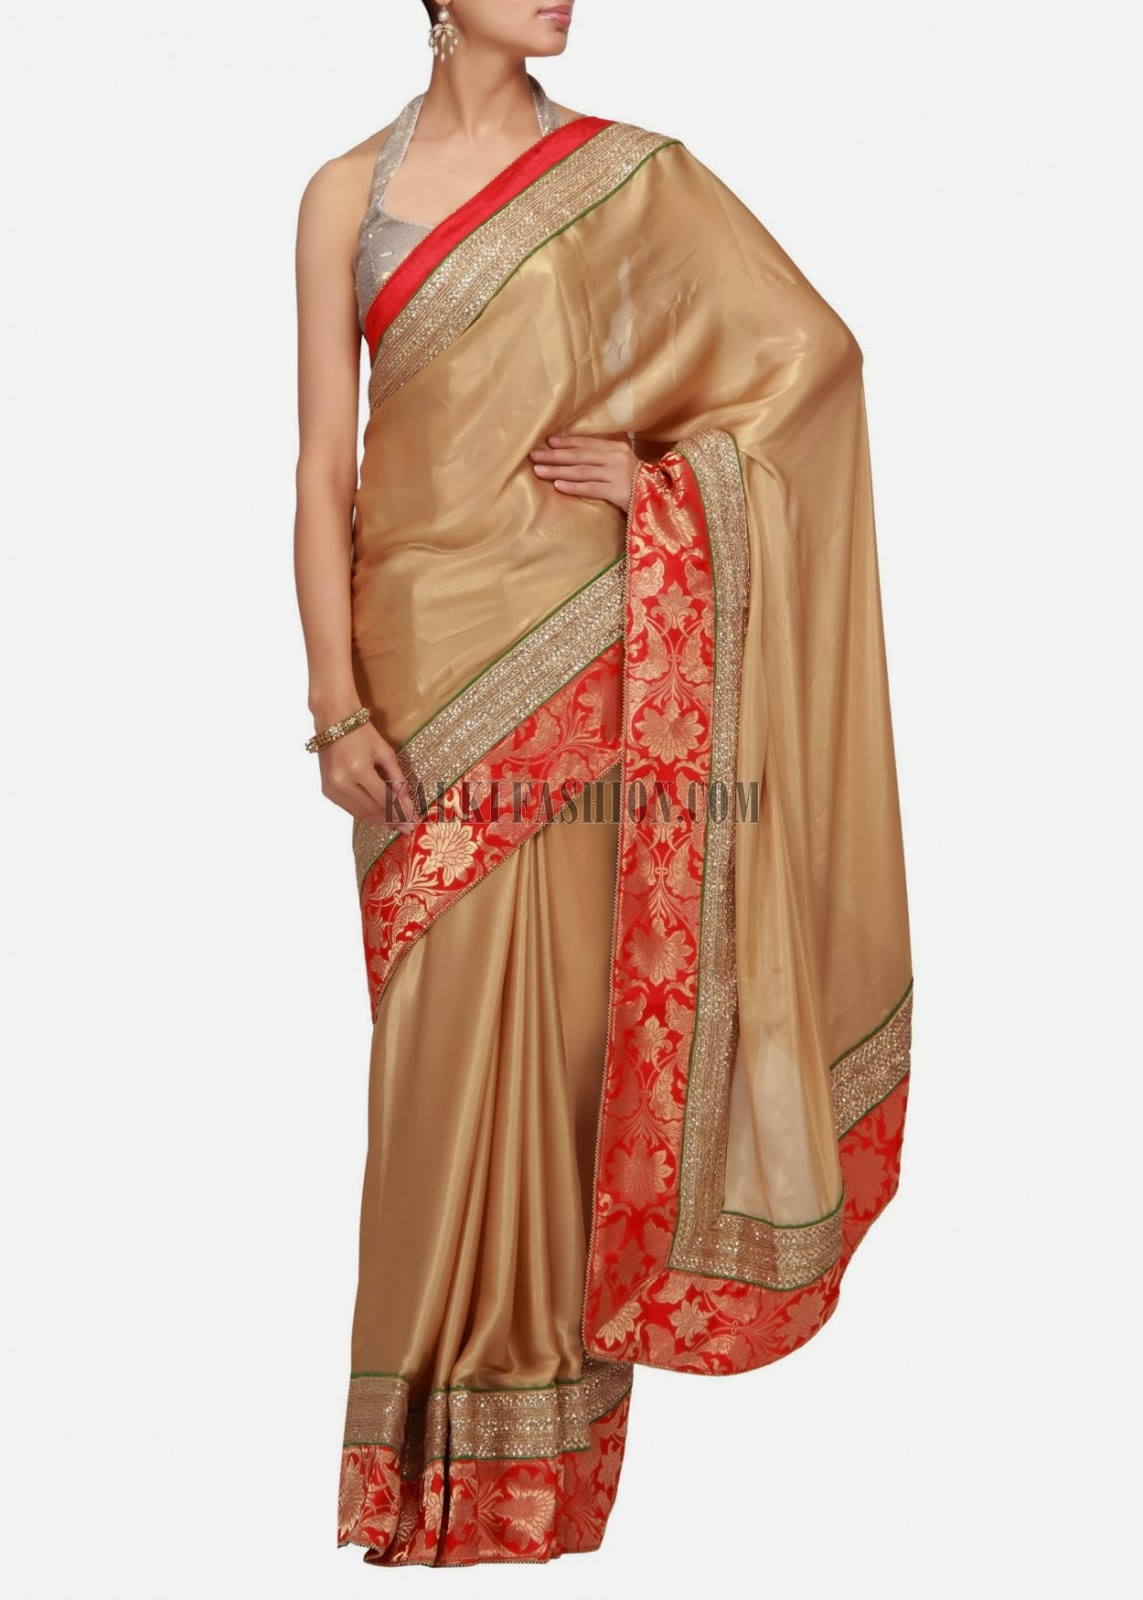 Kalki designer latest sarees collection